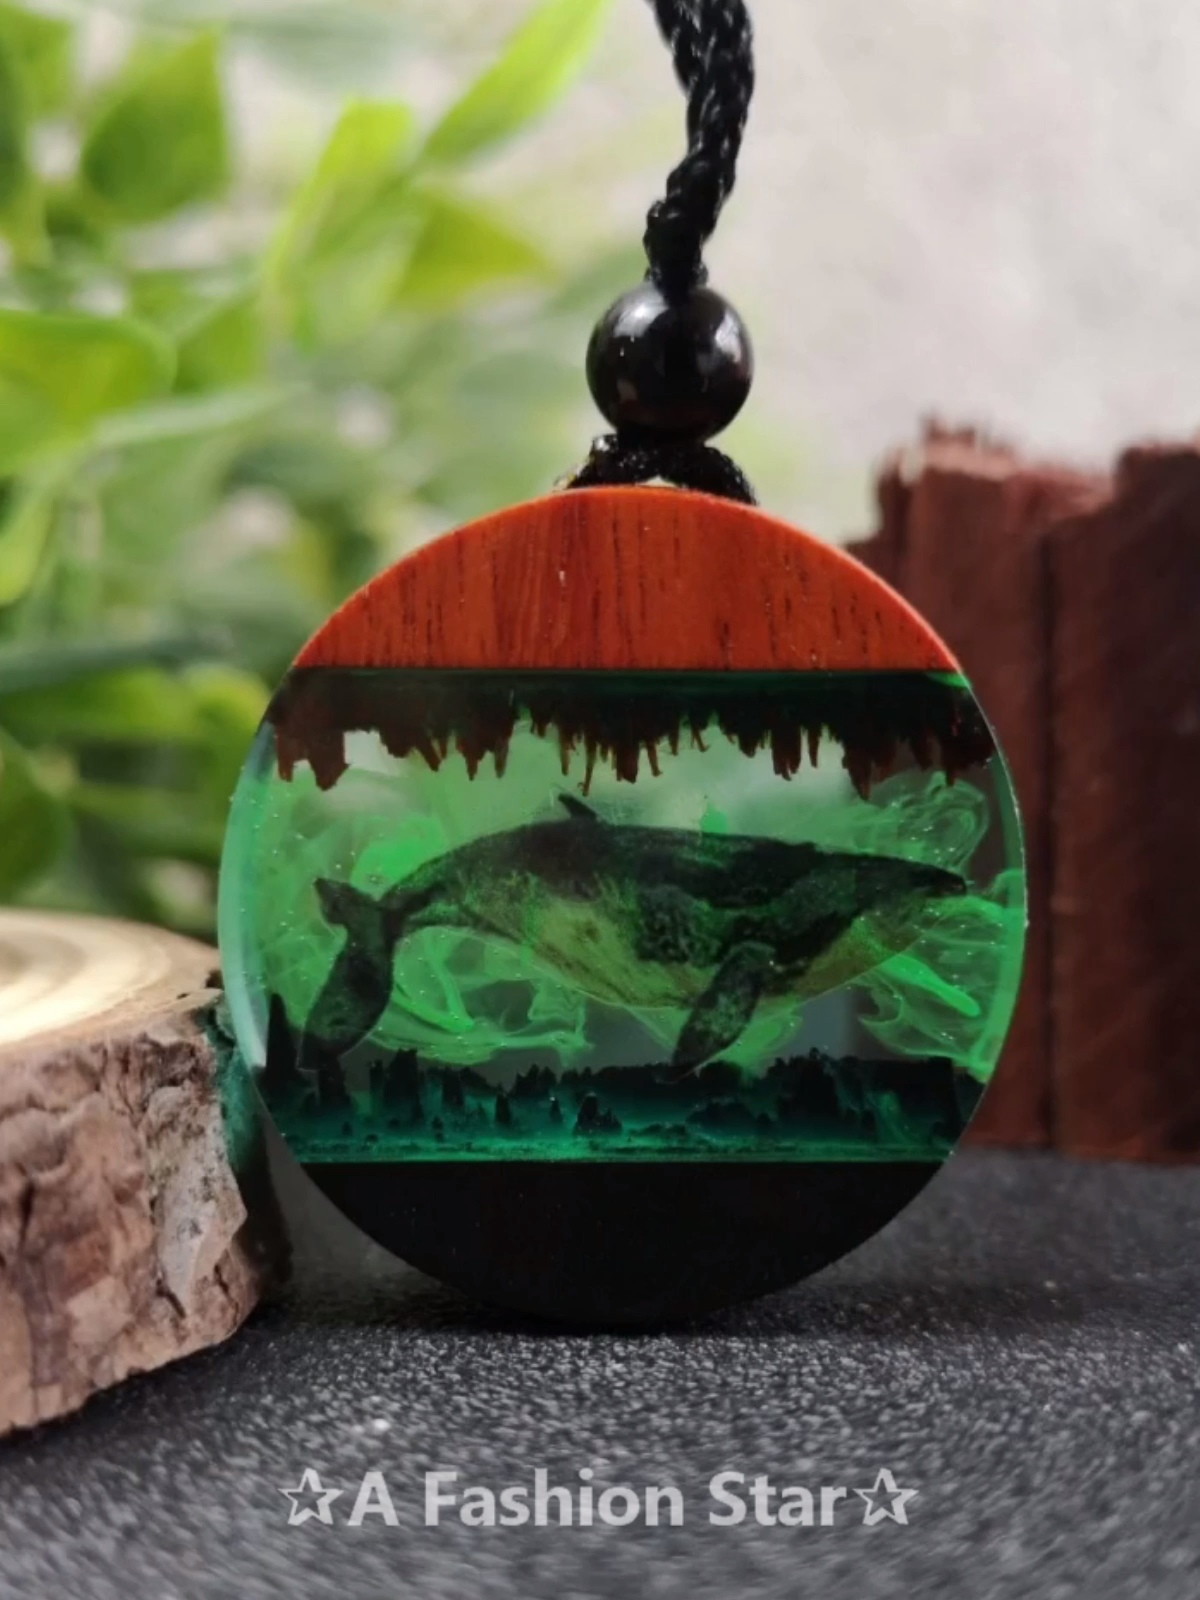 How To Make Resin Crafts Amazing Wood Resin Necklace A Fashion Star